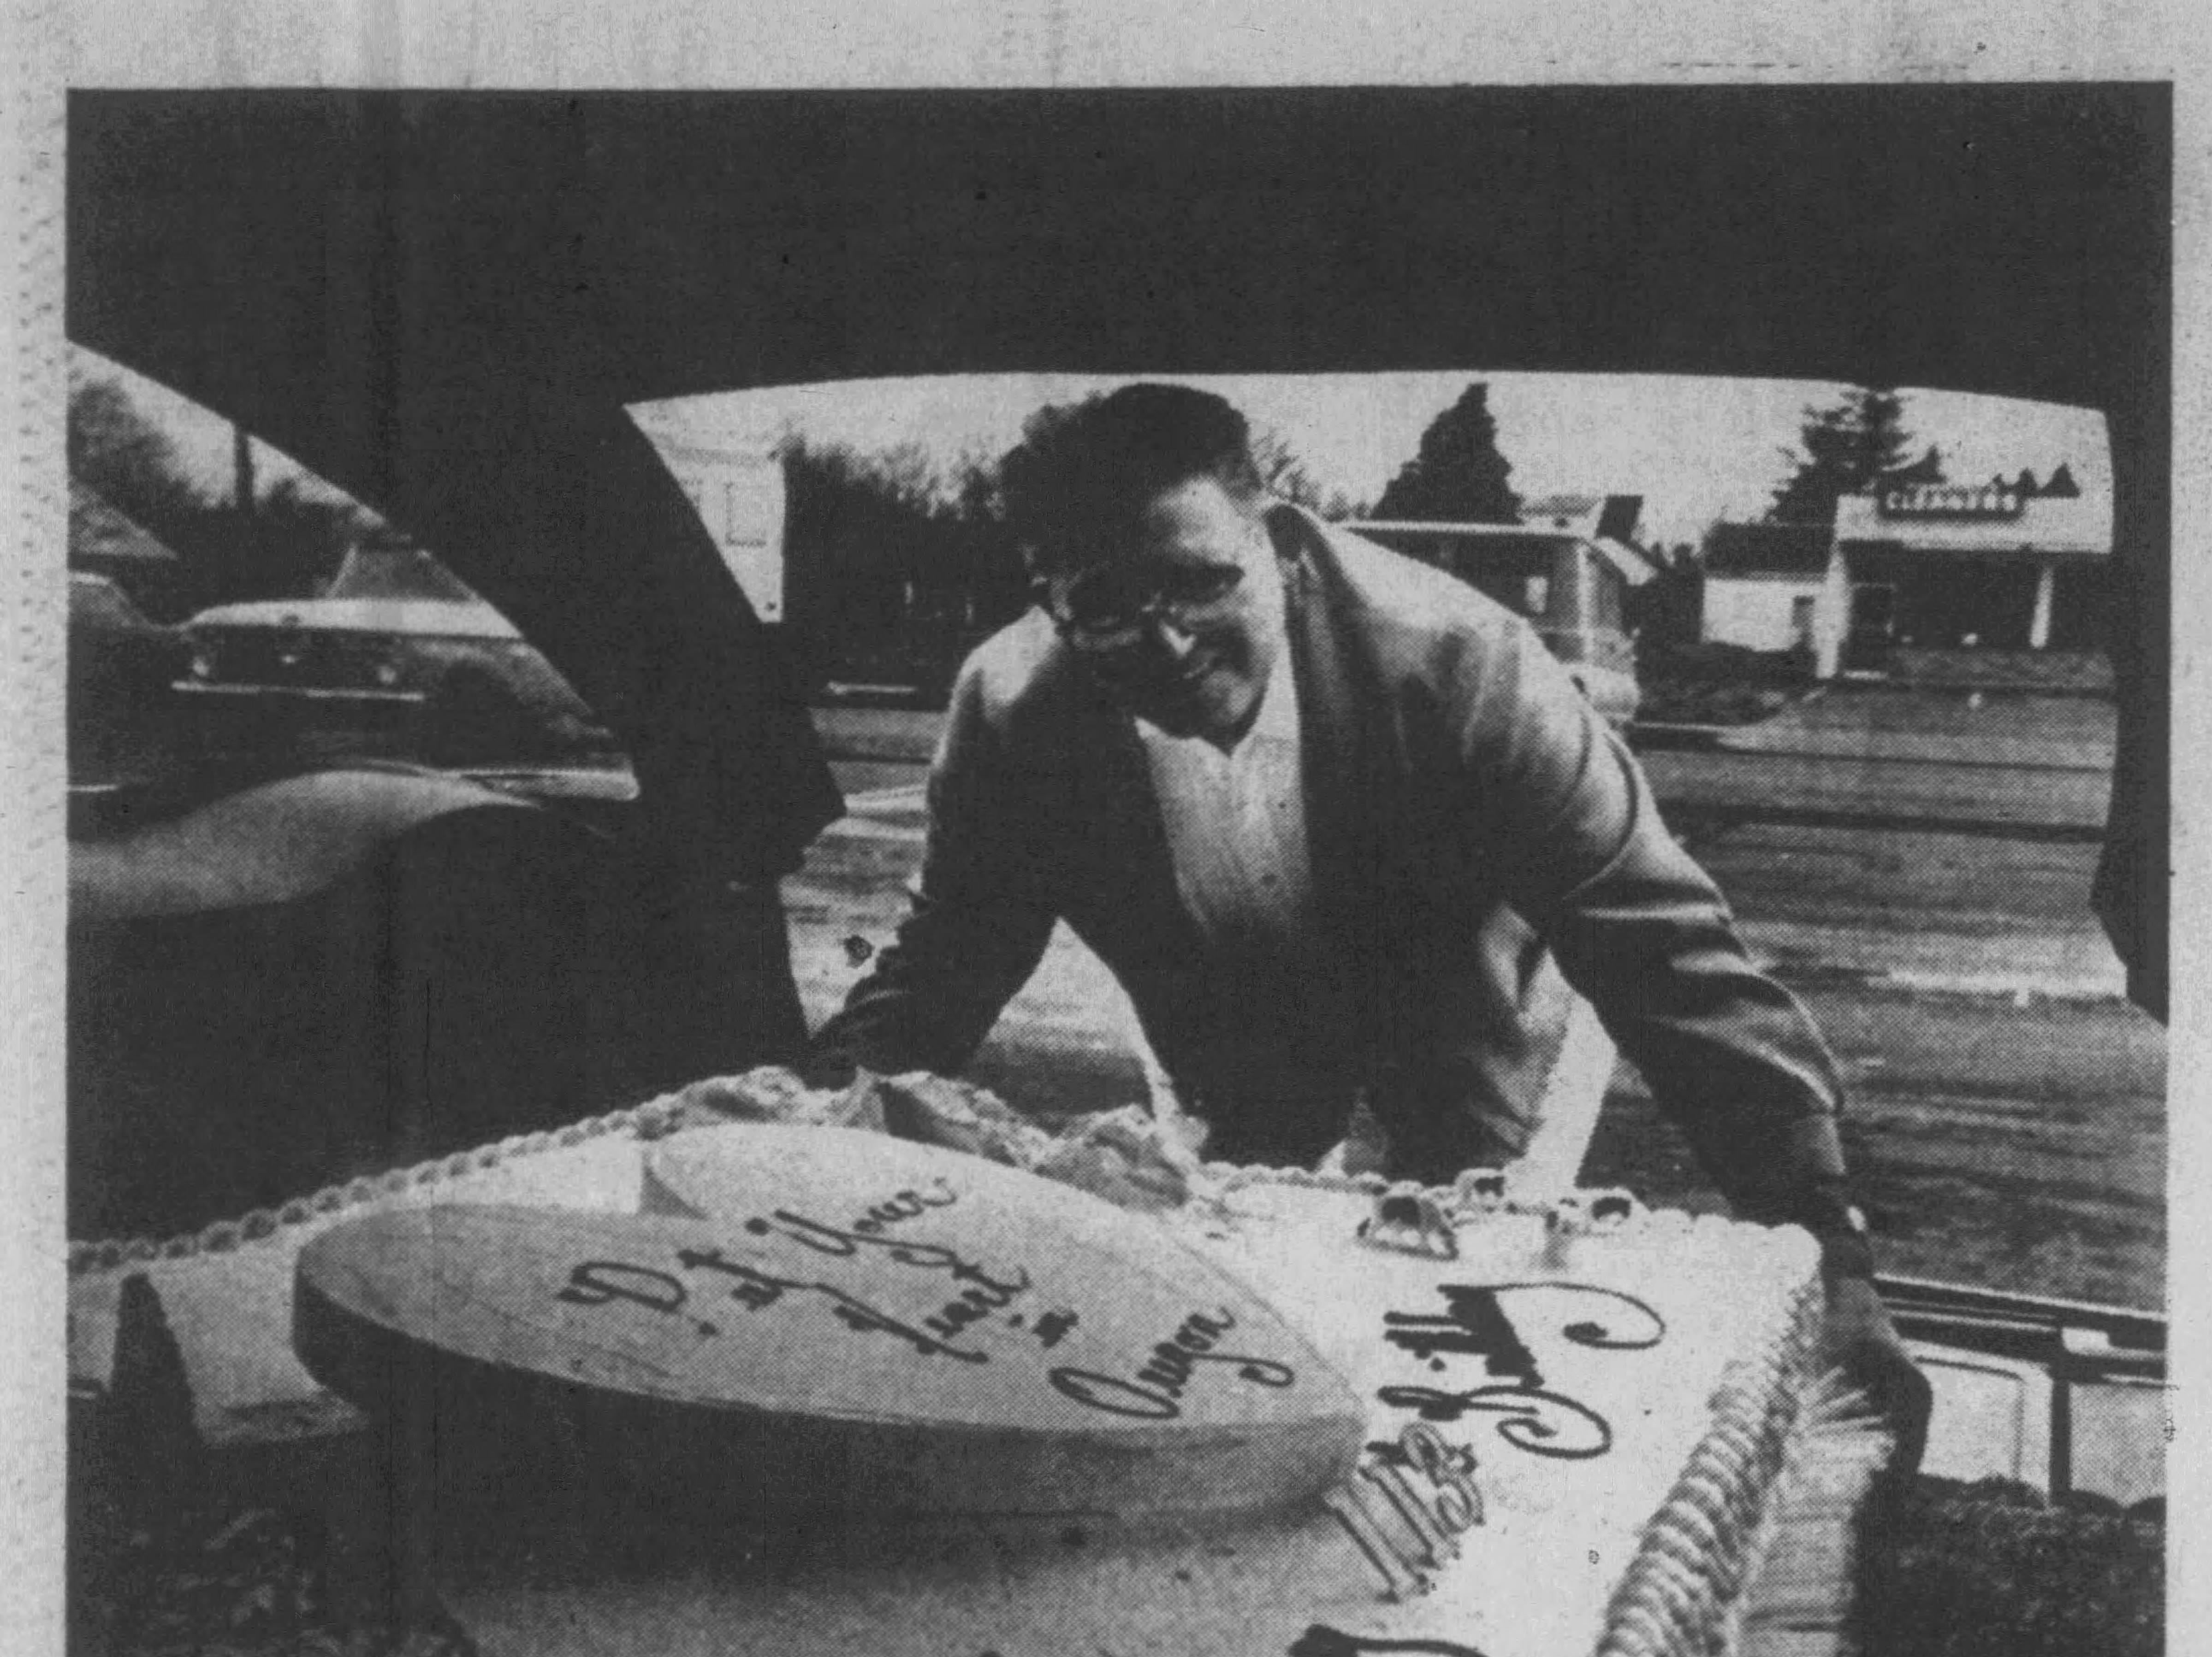 A 400-pound cake is headed to Oregon's 113th birthday celebration in 1972, according to this photograph published in the Capital Journal.